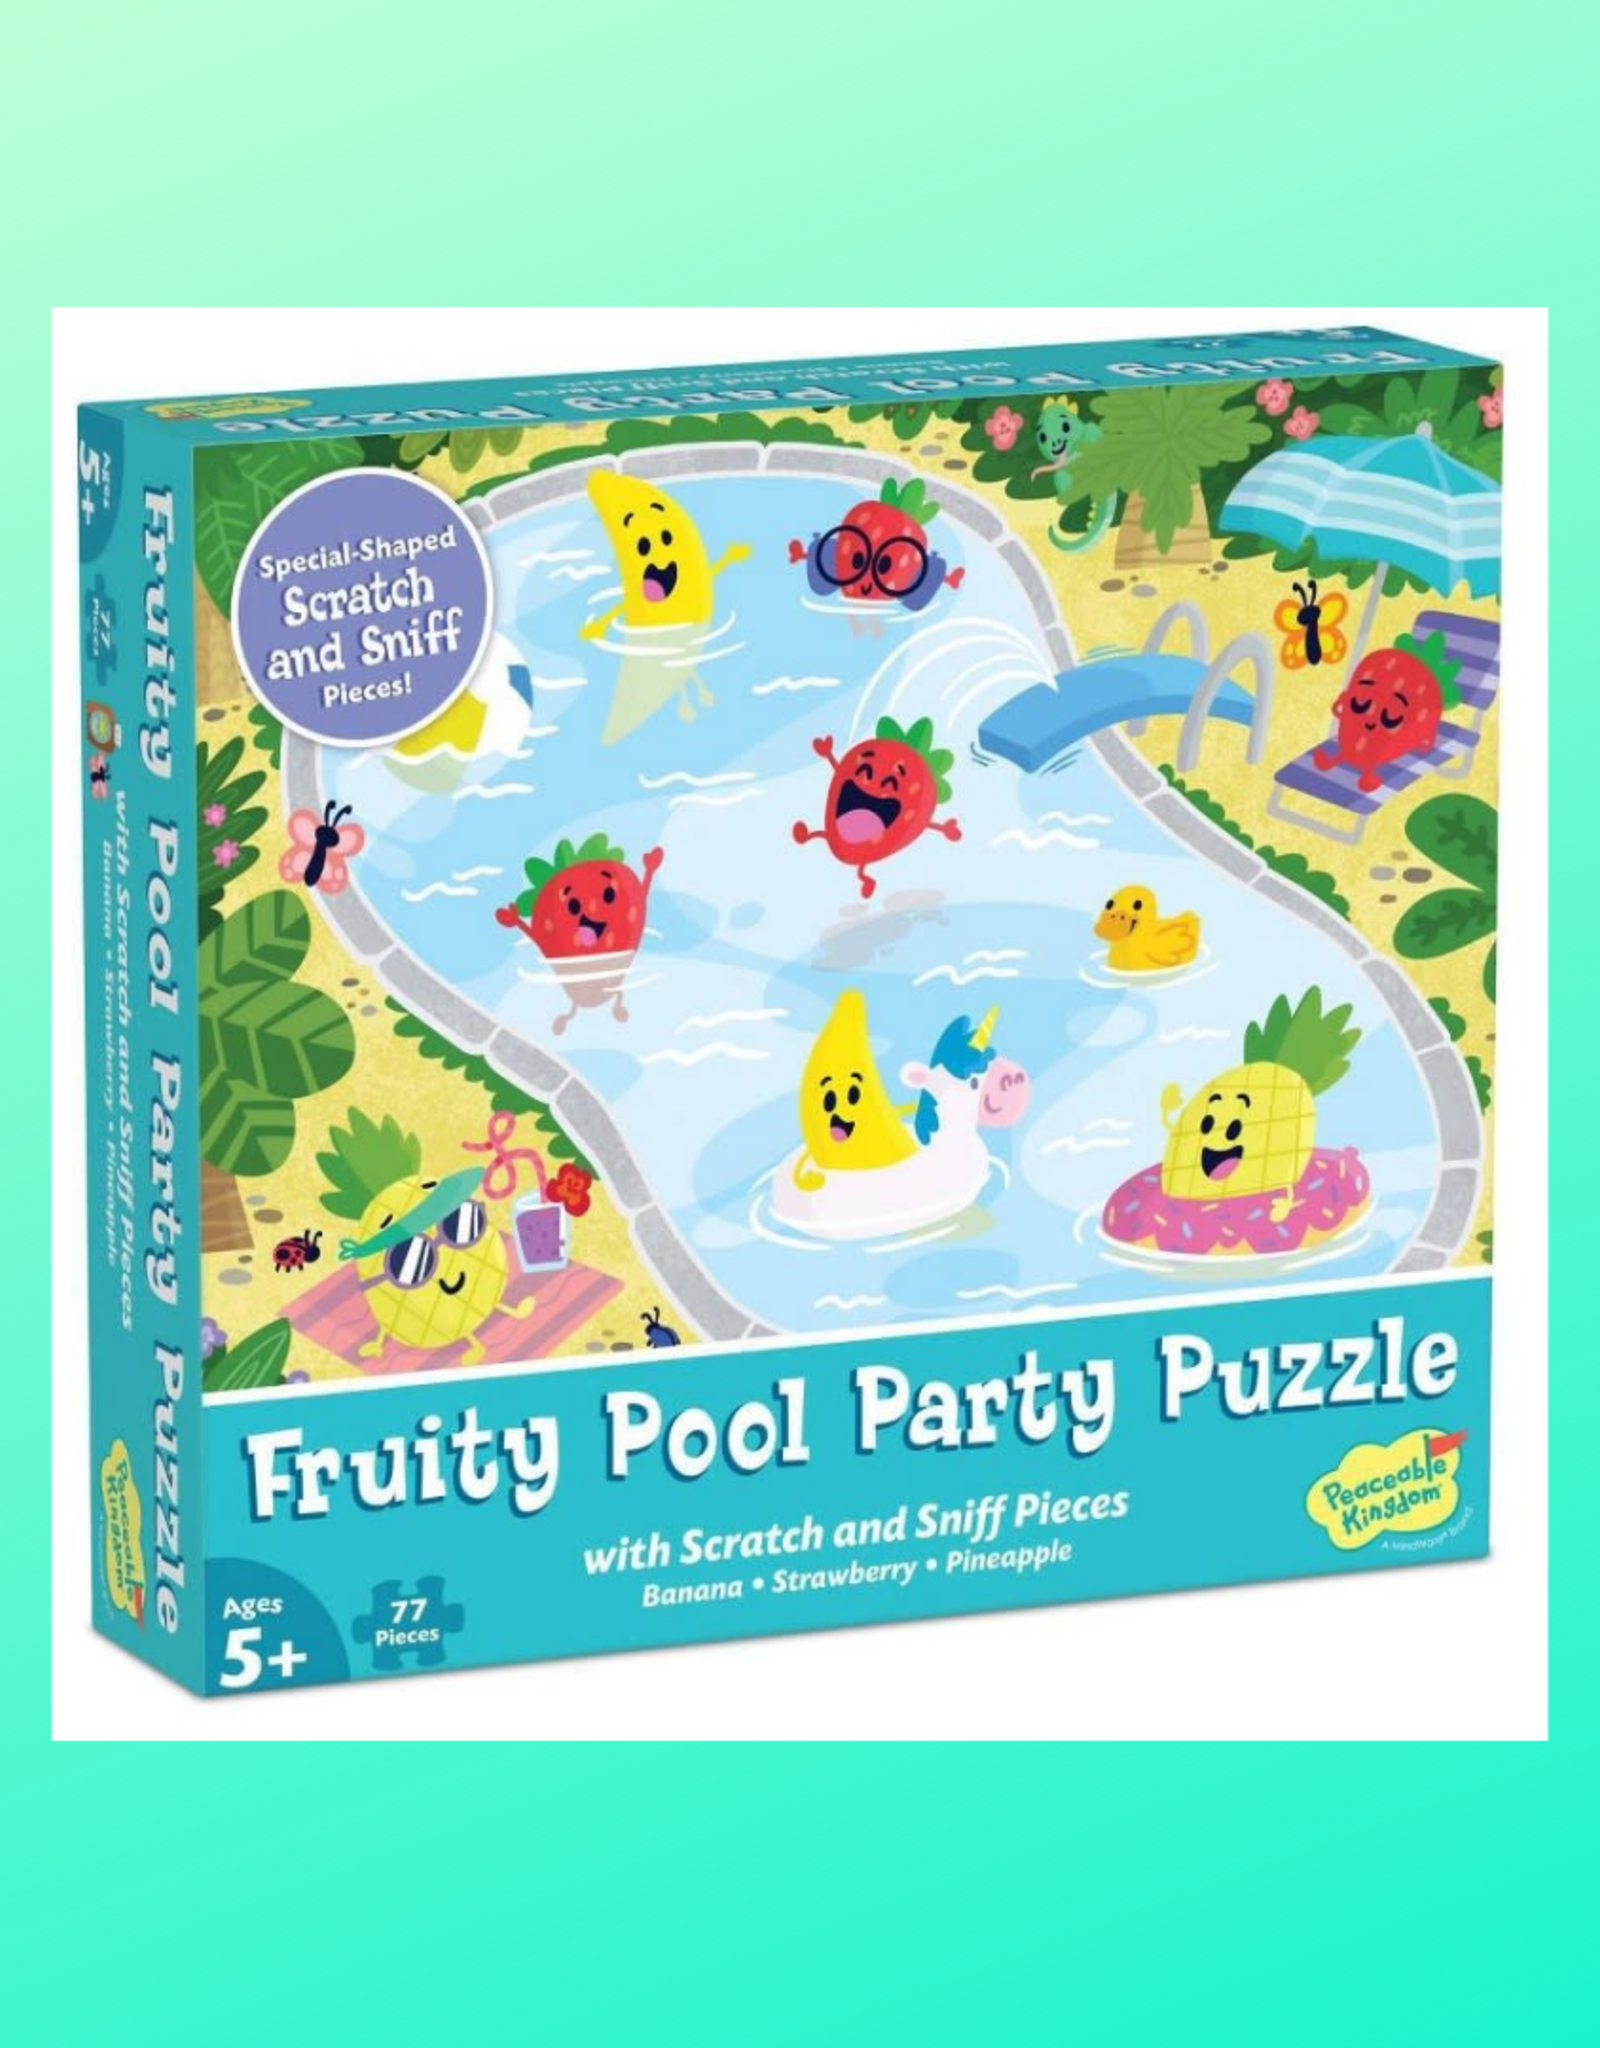 PEACEABLE KINGDOM FRUITY POOL PARTY PUZZLE WITH SCRATCH AND SNIFF